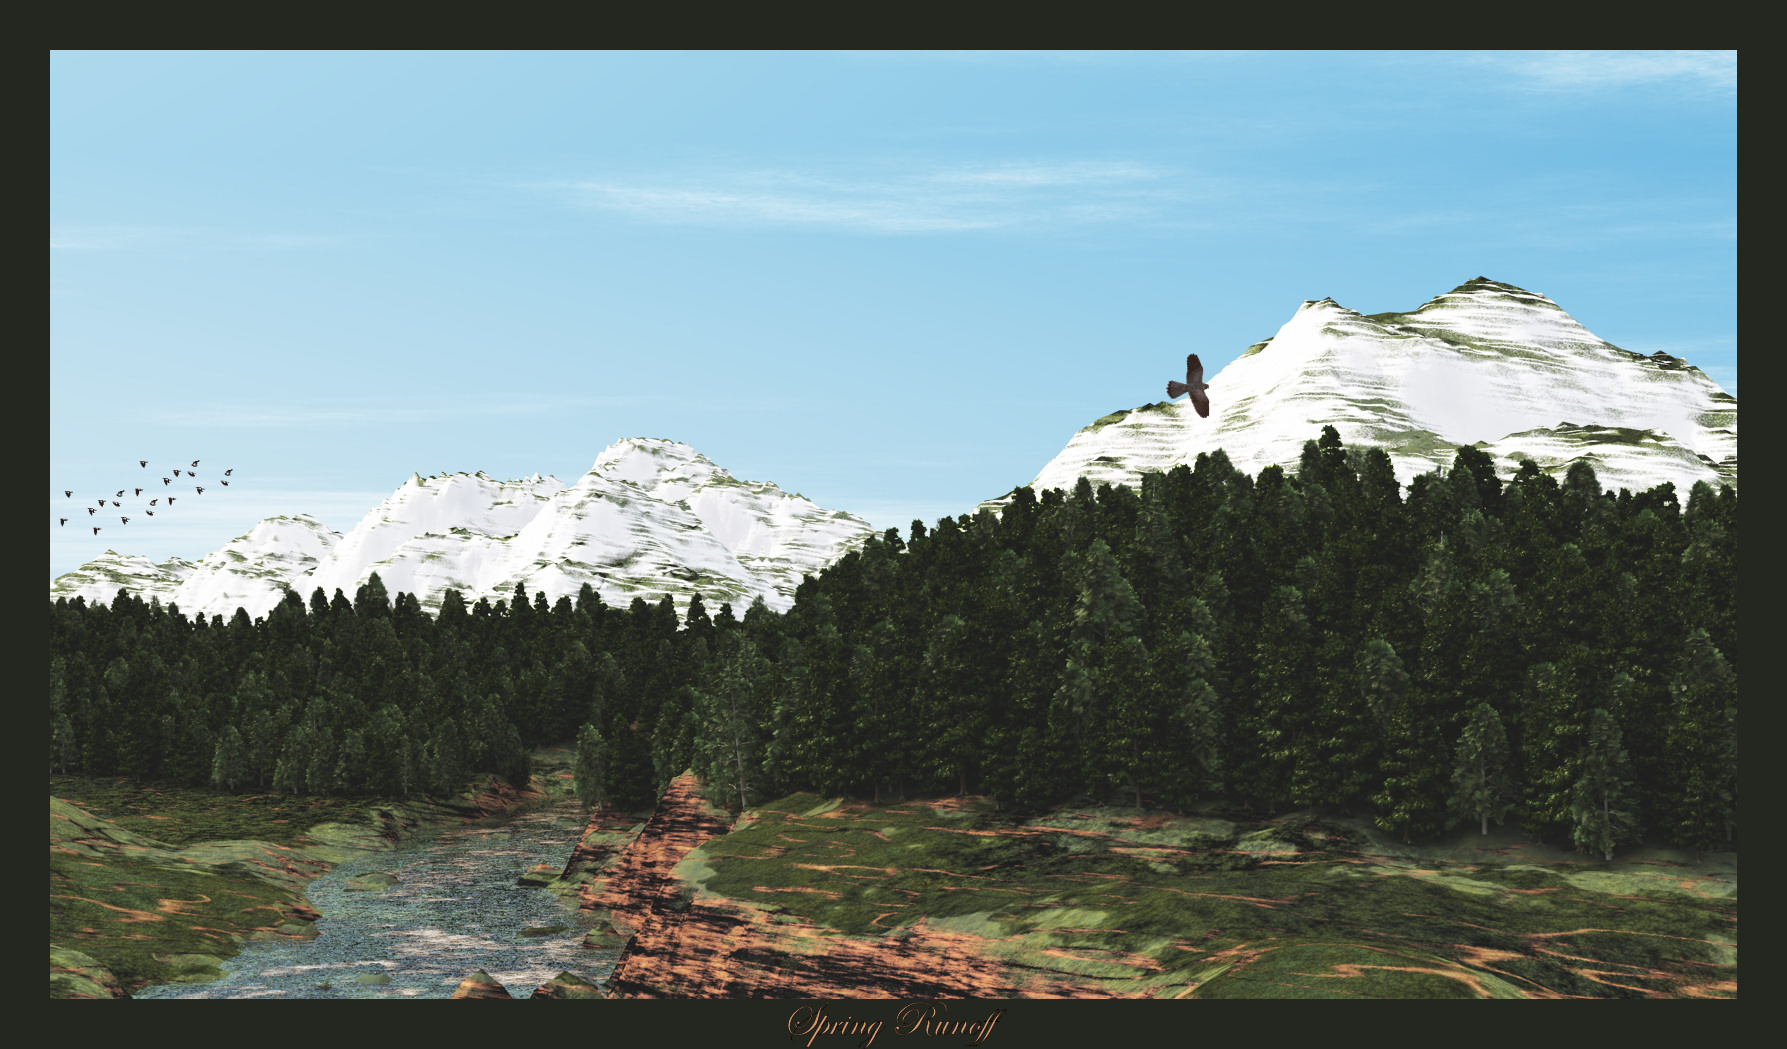 Spring Runnoff by jbjdesigns